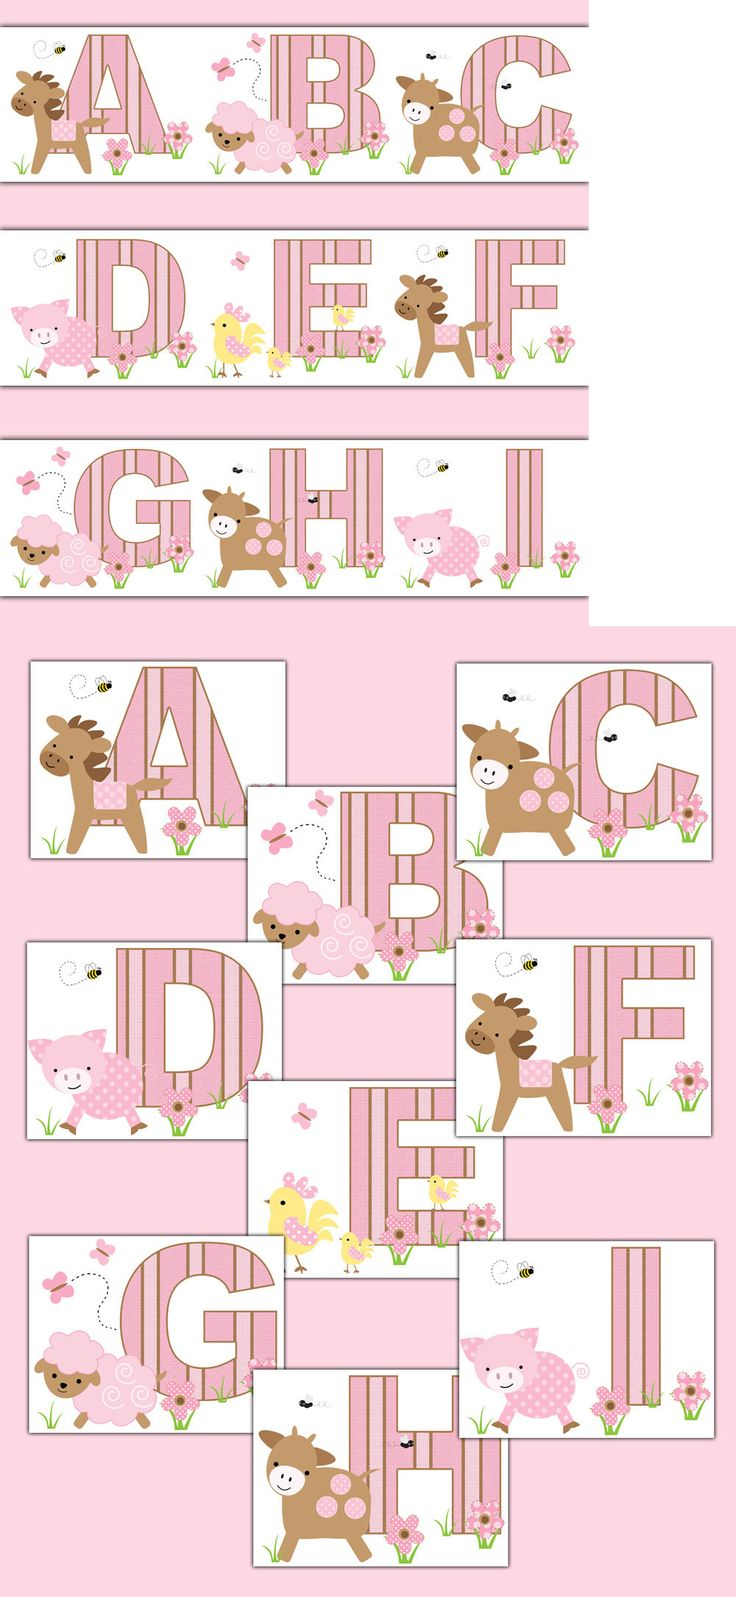 Wallpaper Borders 37636: Farm Animal Nursery Pink Barnyard Alphabet Wallpaper Border Wall Decals Stickers -> BUY IT NOW ONLY: $50 on eBay!